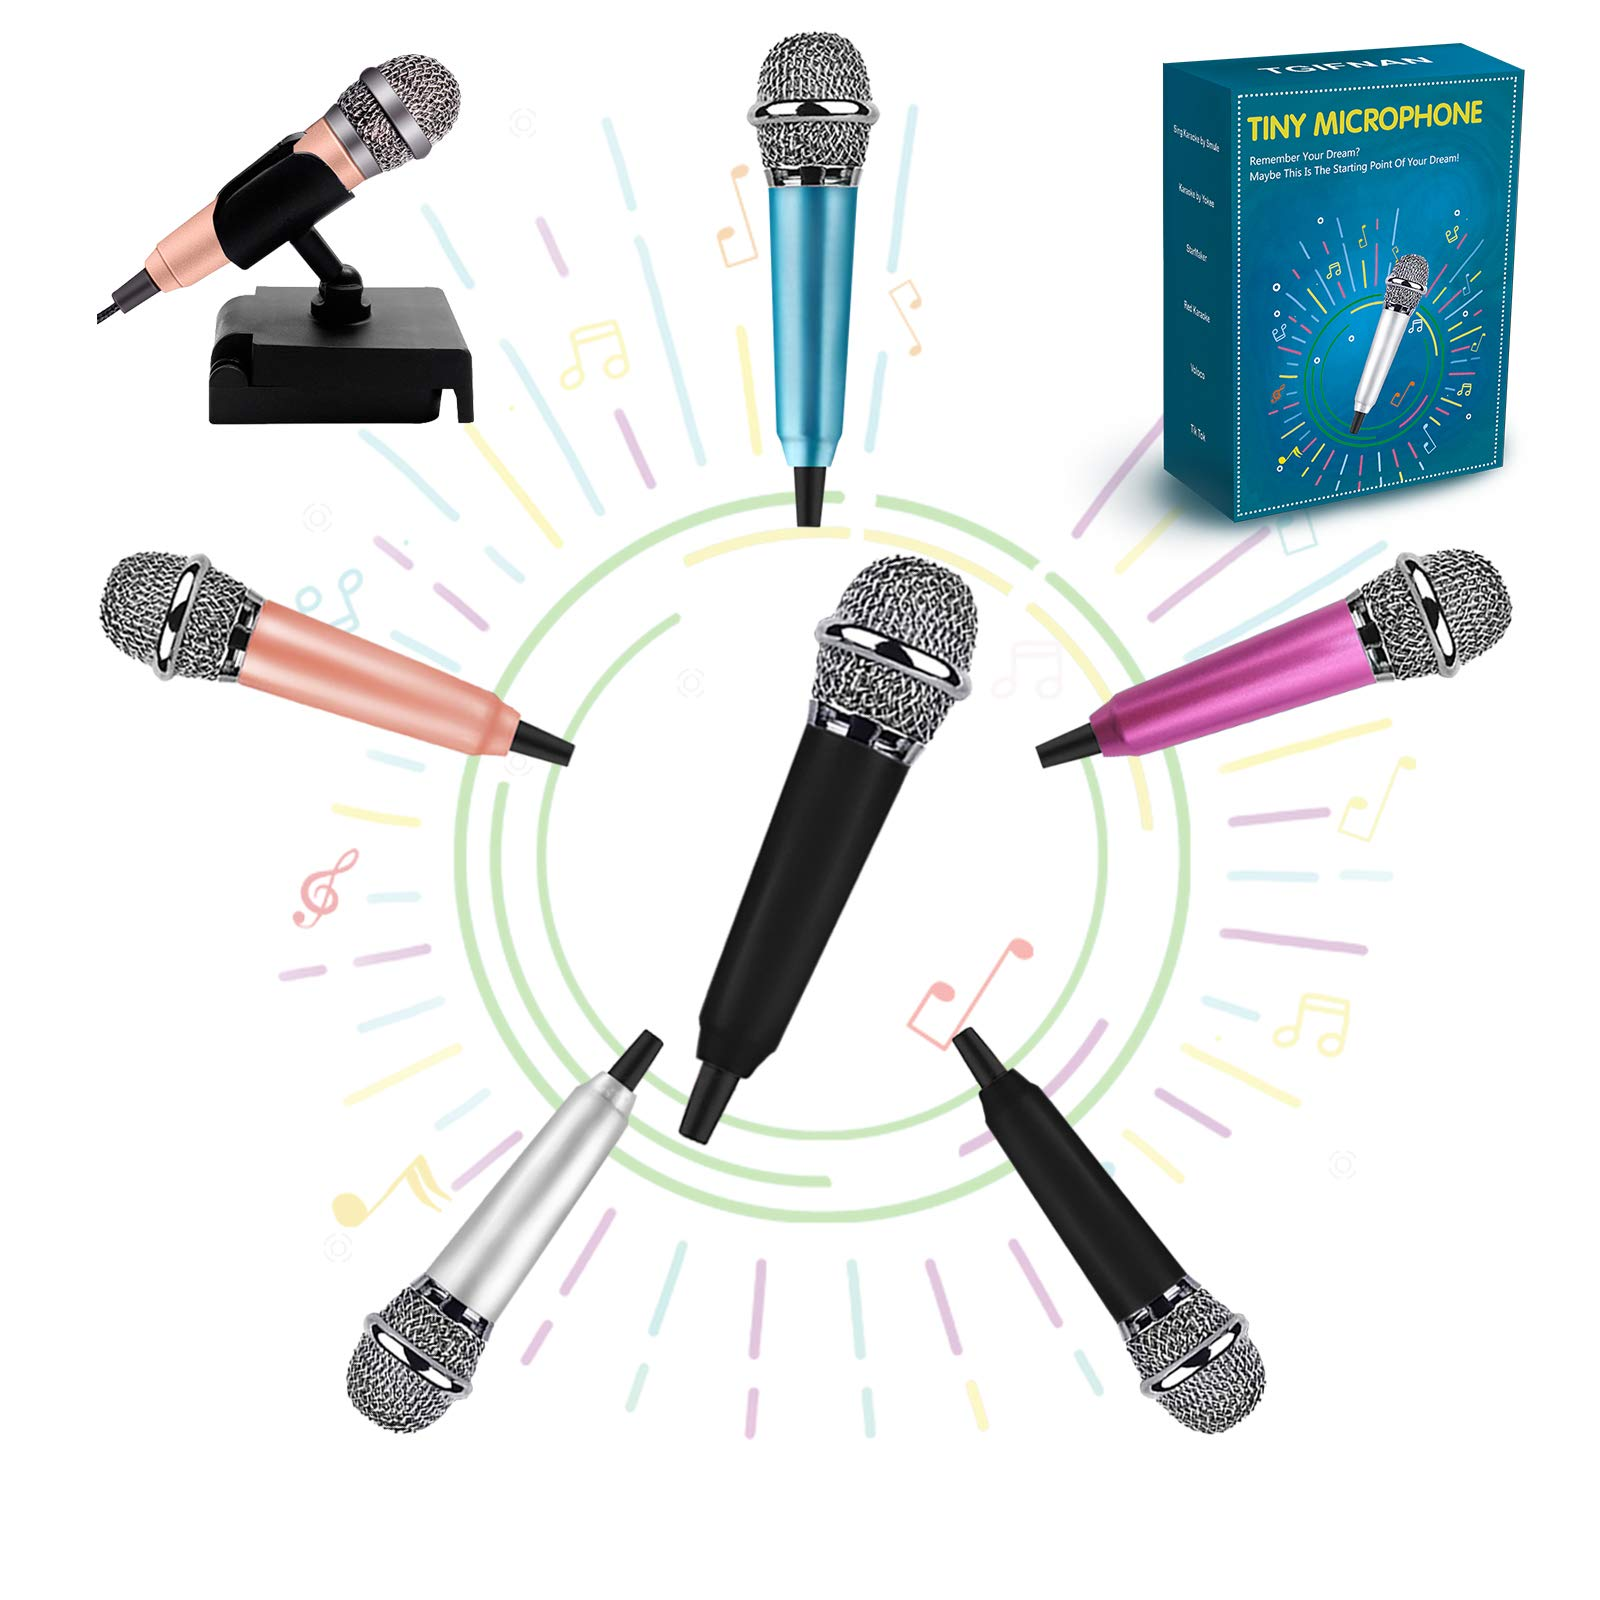 Mini Microphone Karaoke Microphone Tiny Microphone,Mini Microphone for Singing, Recording and Listening to Songs,Mic for iPhone/Android/PC (Black)